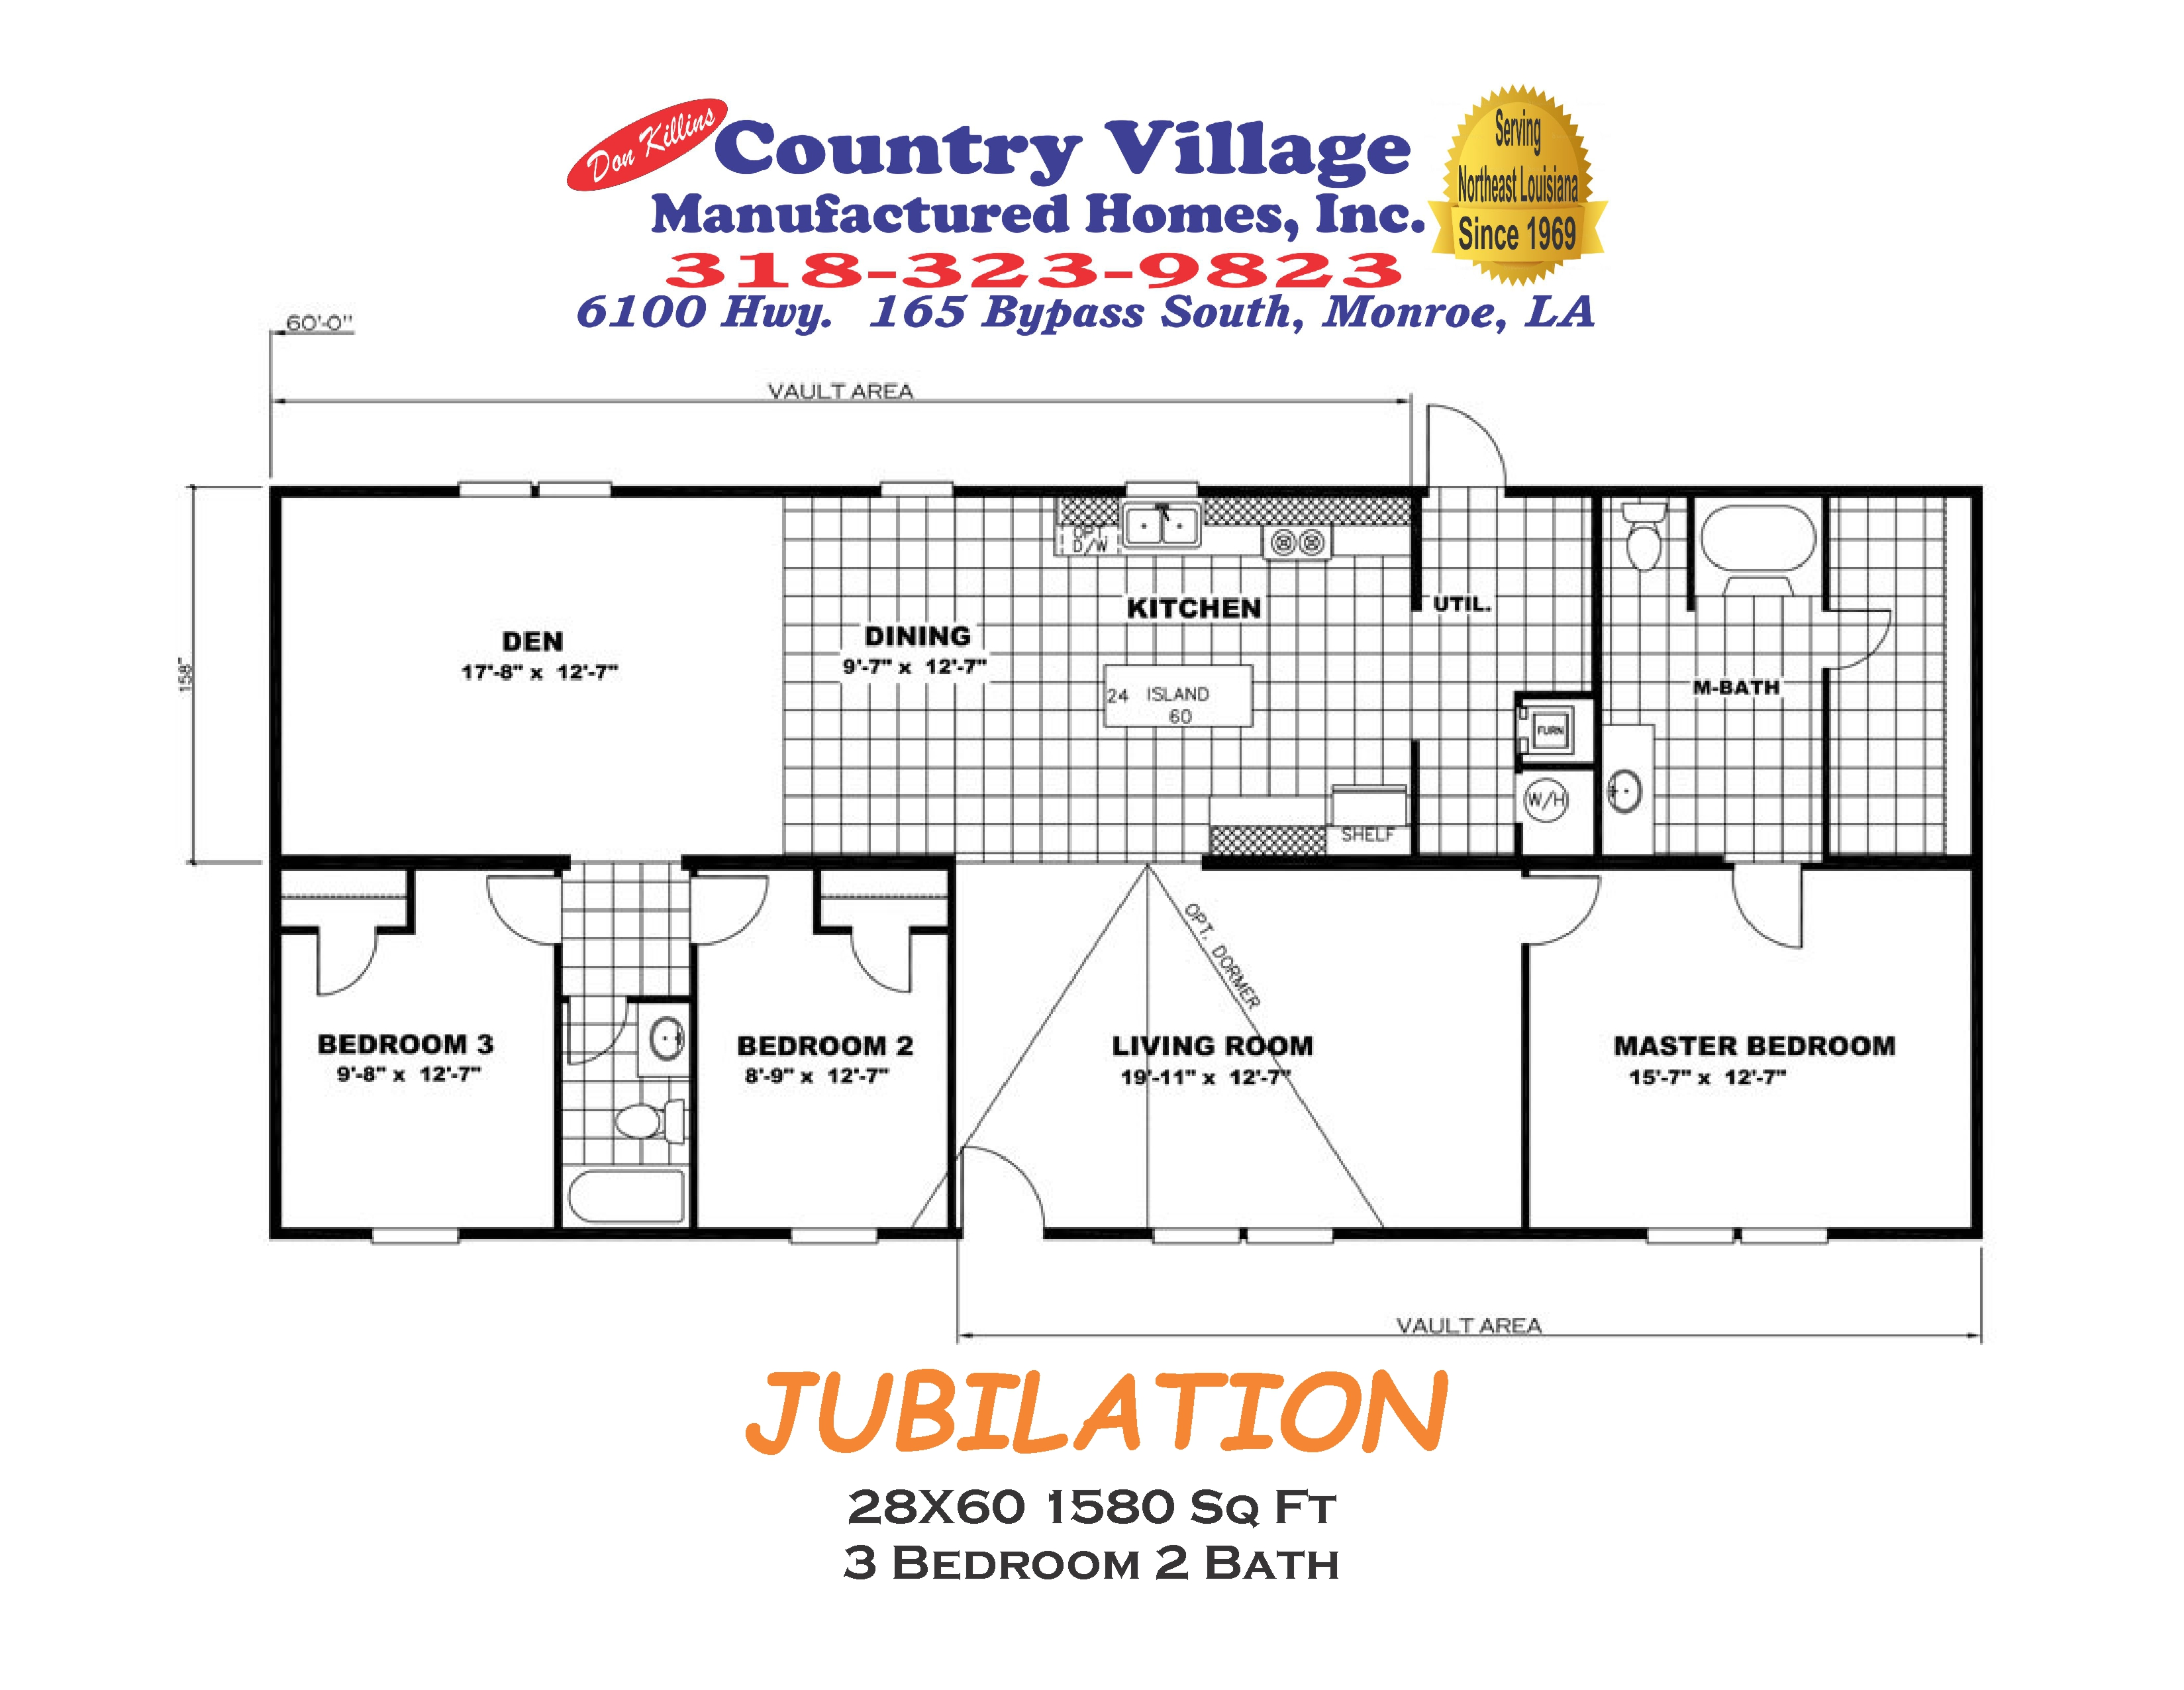 JUBILATION 28X60 1580 sq ft 3+2